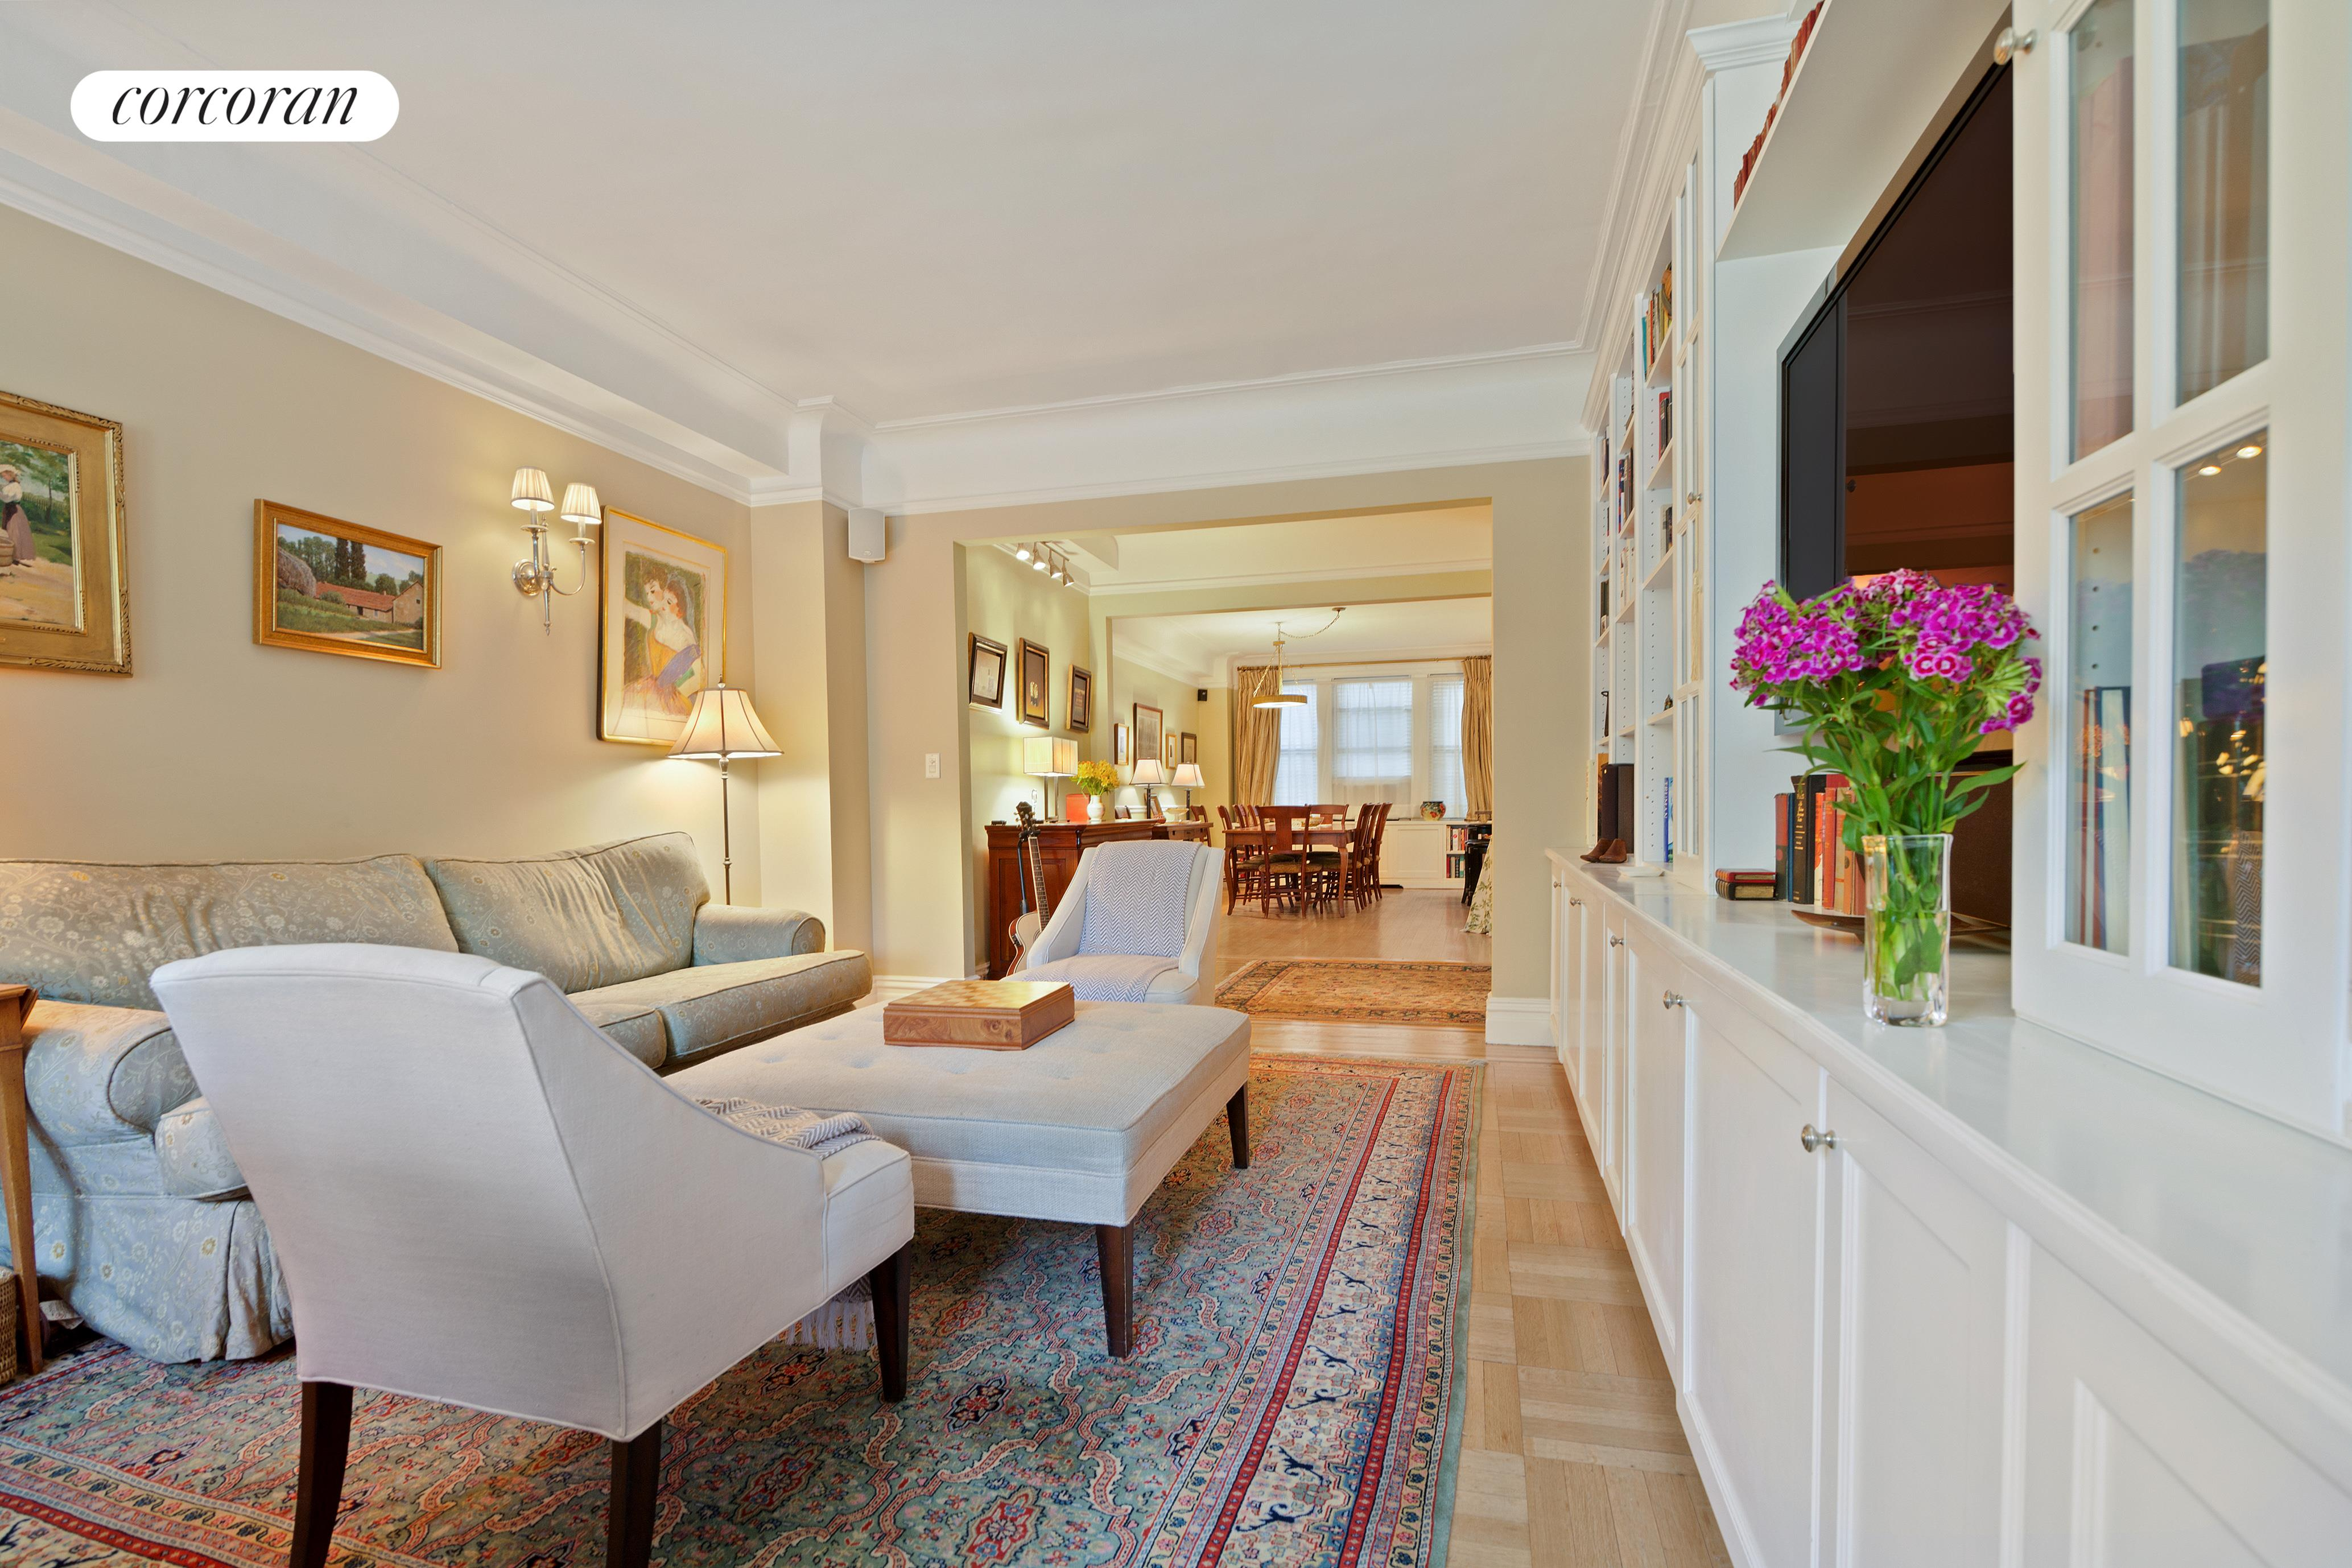 221 West 82nd Street Upper West Side New York NY 10024